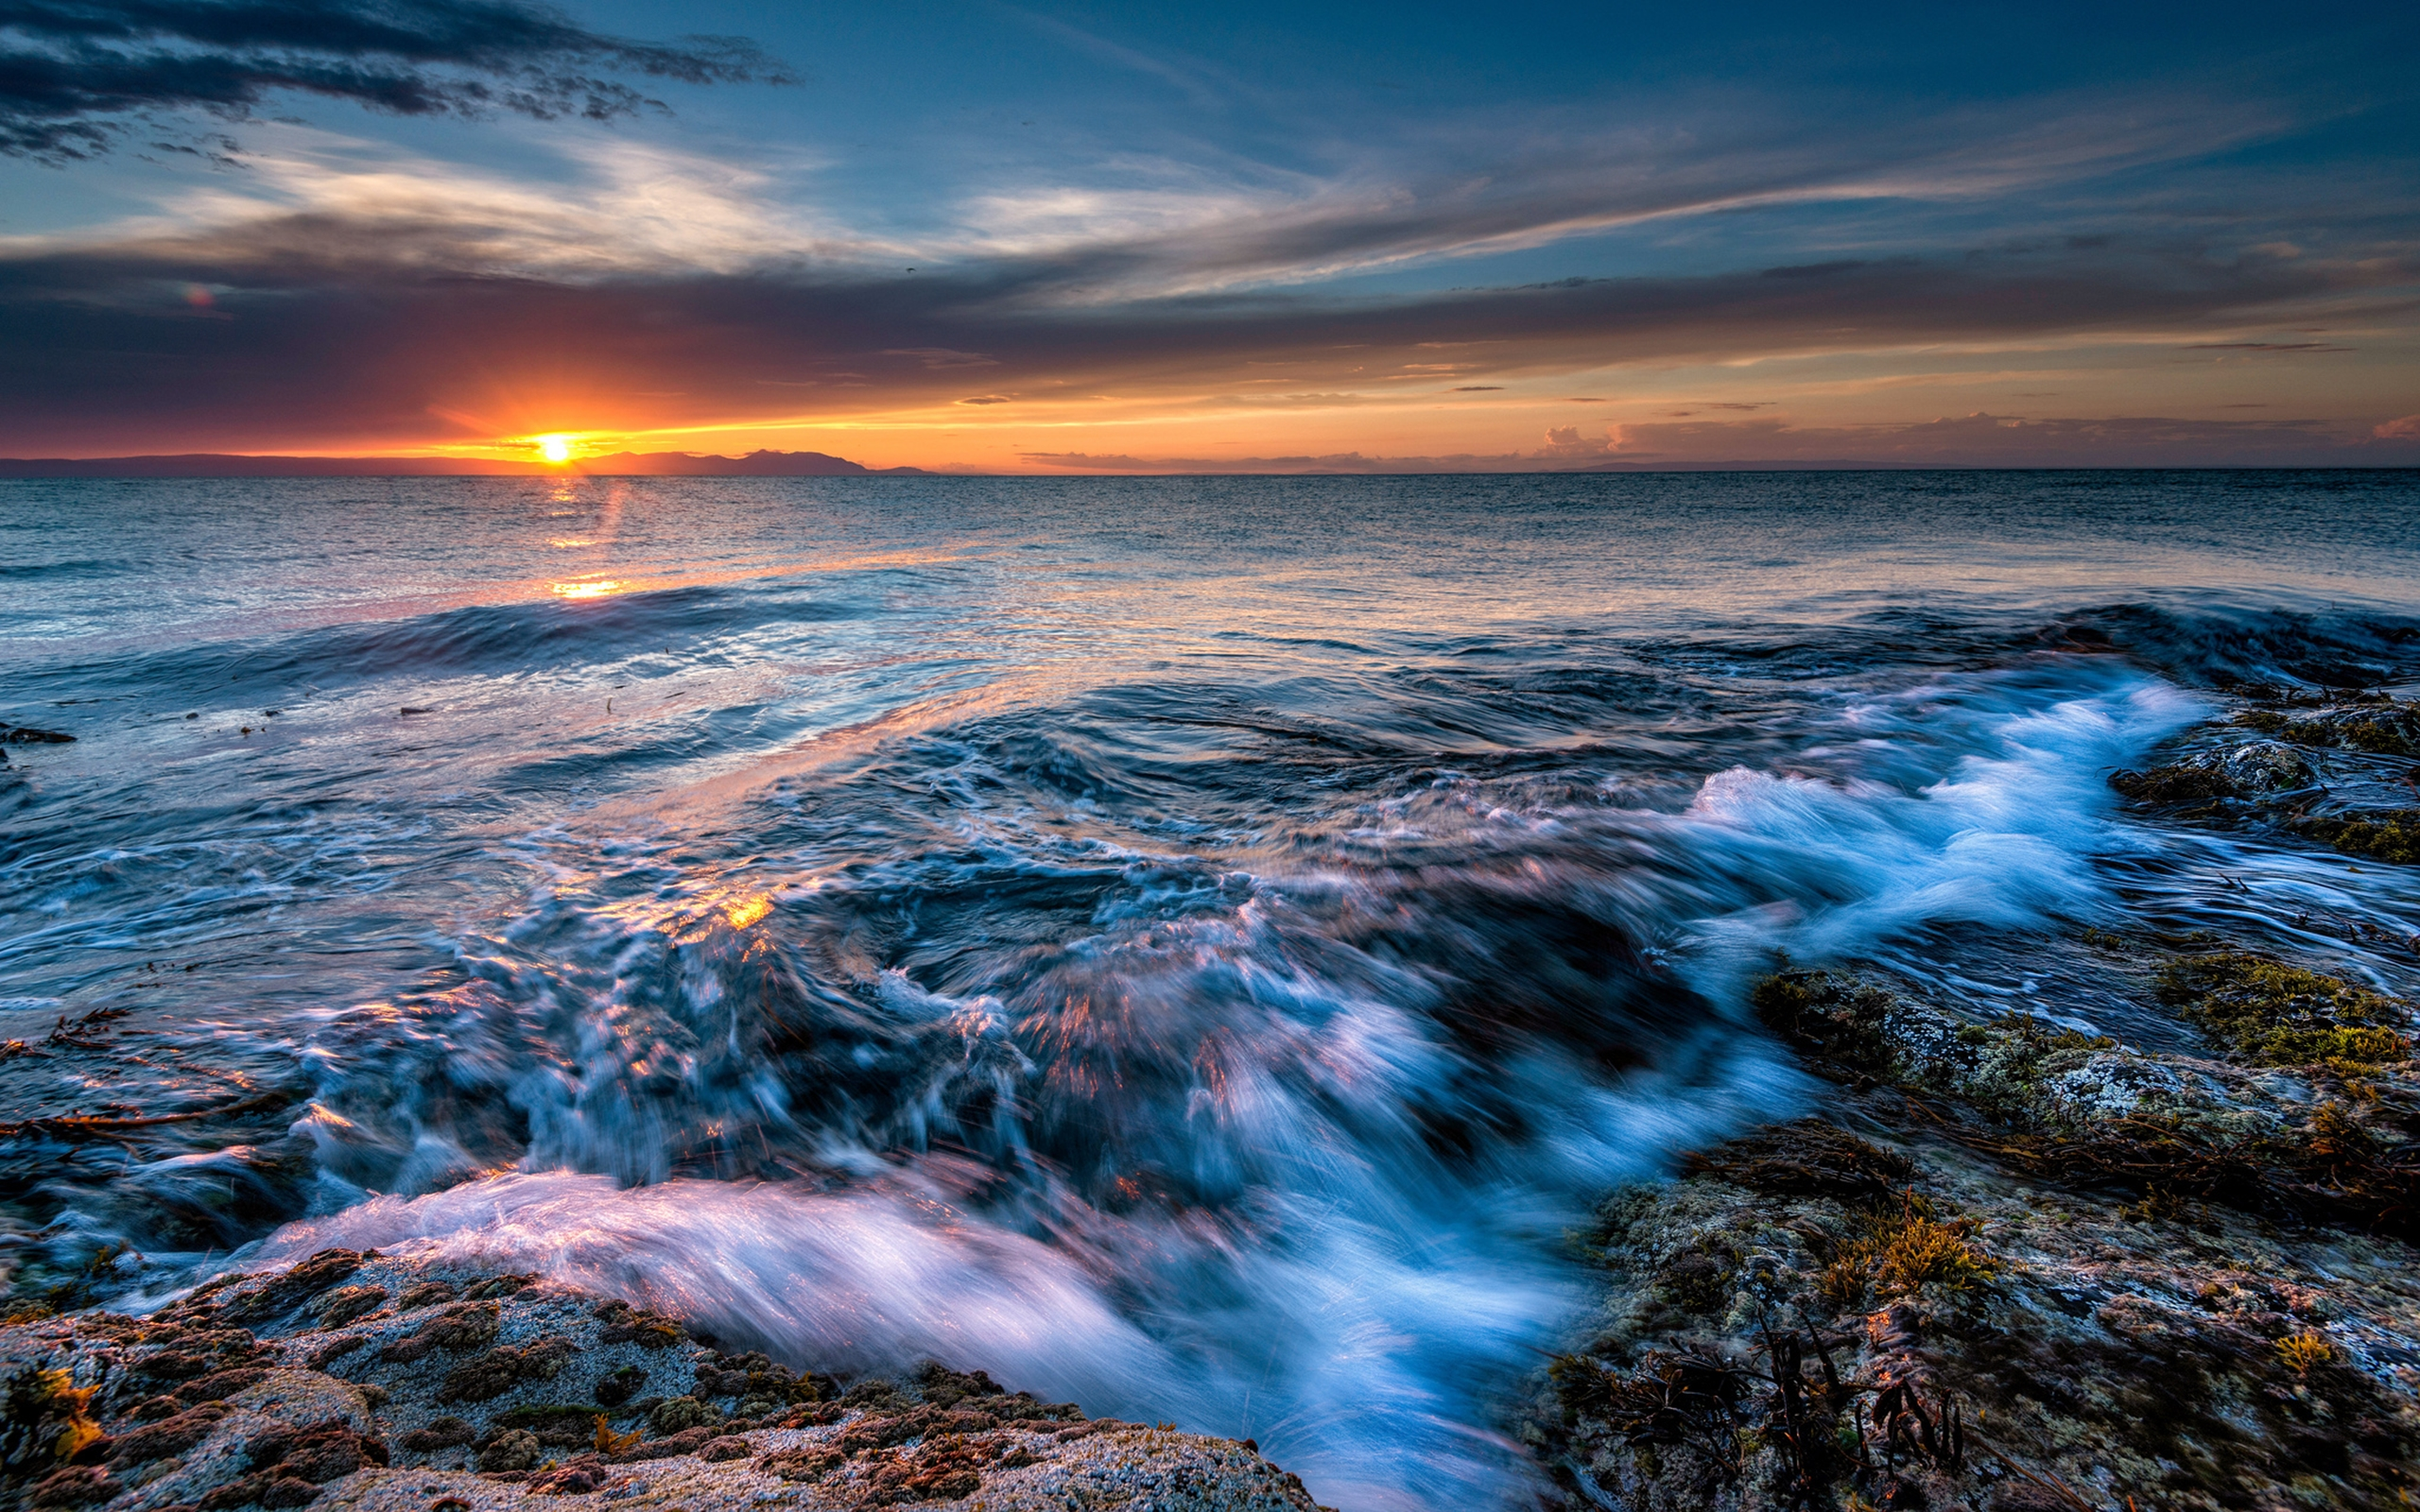 Ocean Wallpaper Backgrounds Download 2560x1600